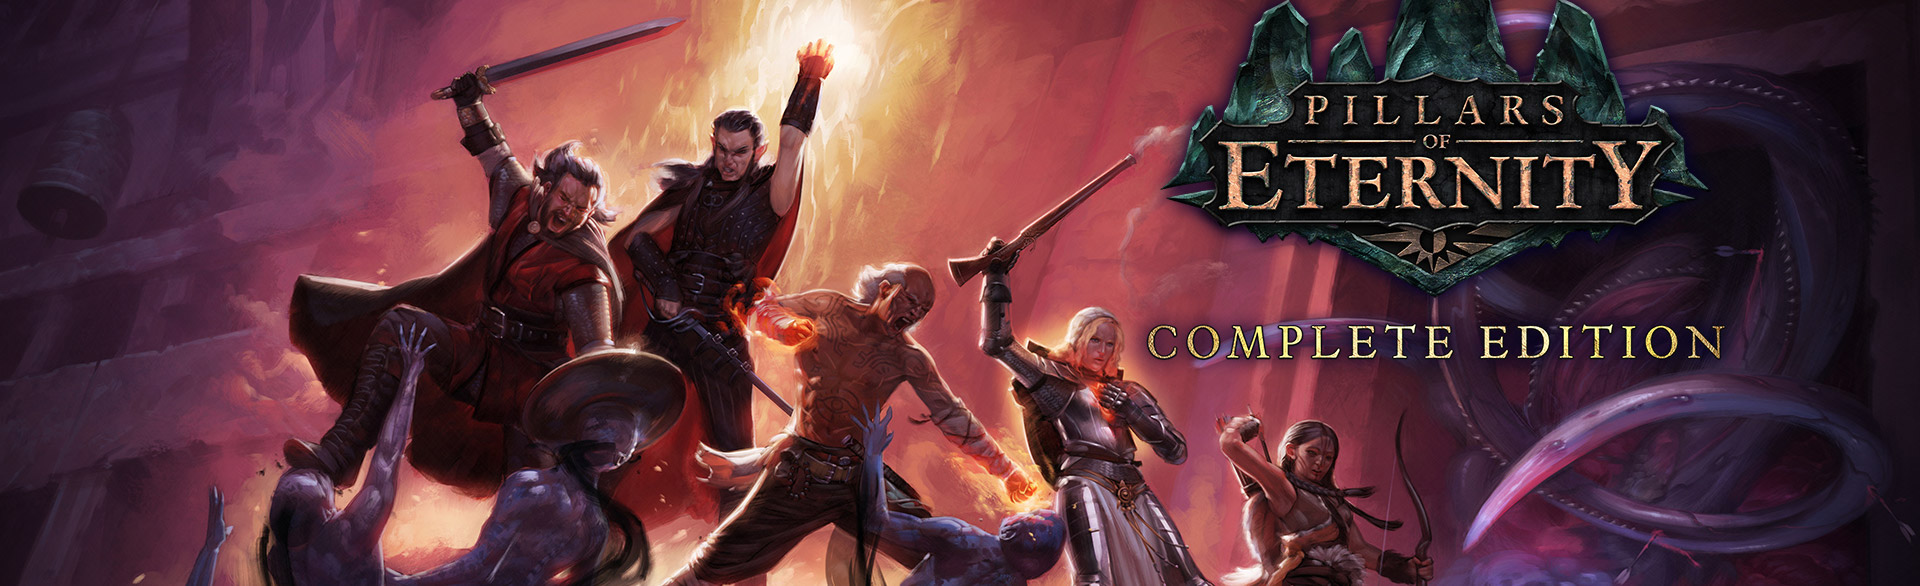 Pillars of Eternity I: Huge Switch Update Available Now